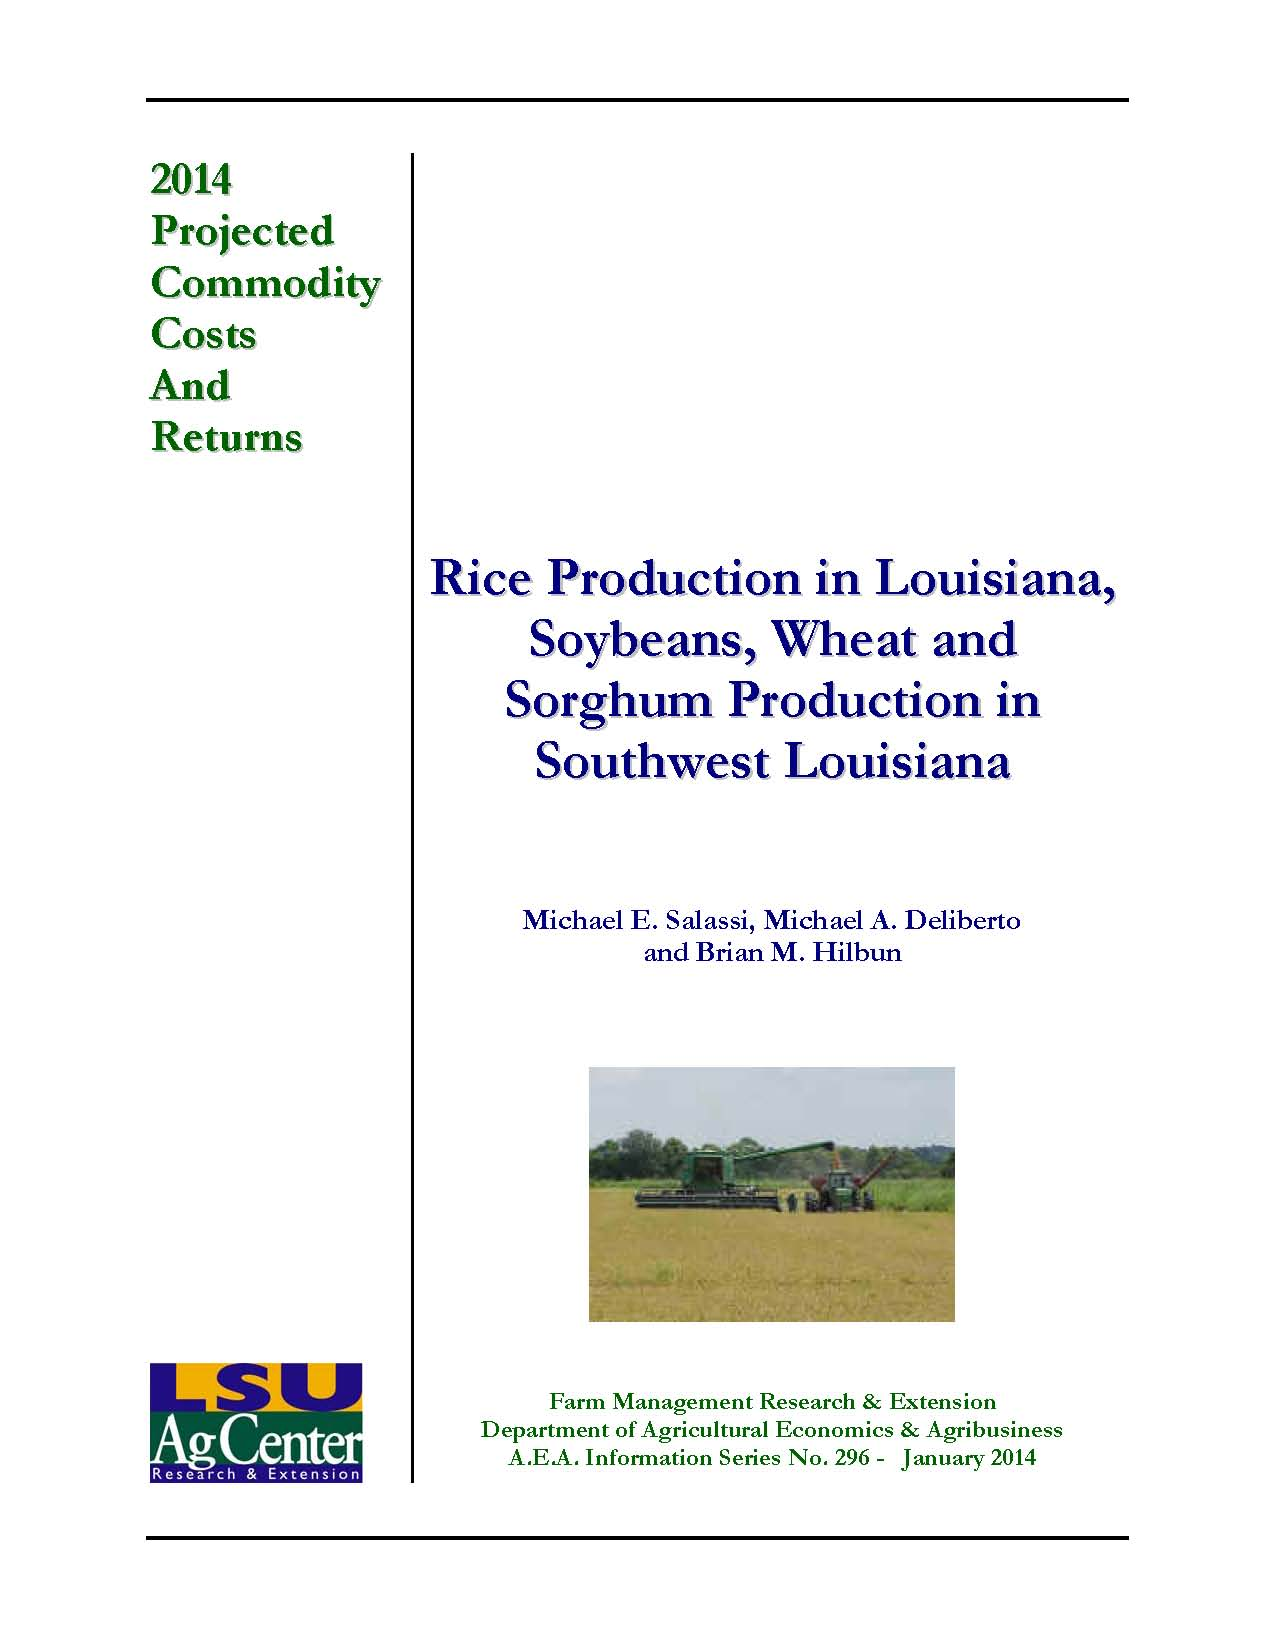 2014 Projected Rice Production Costs